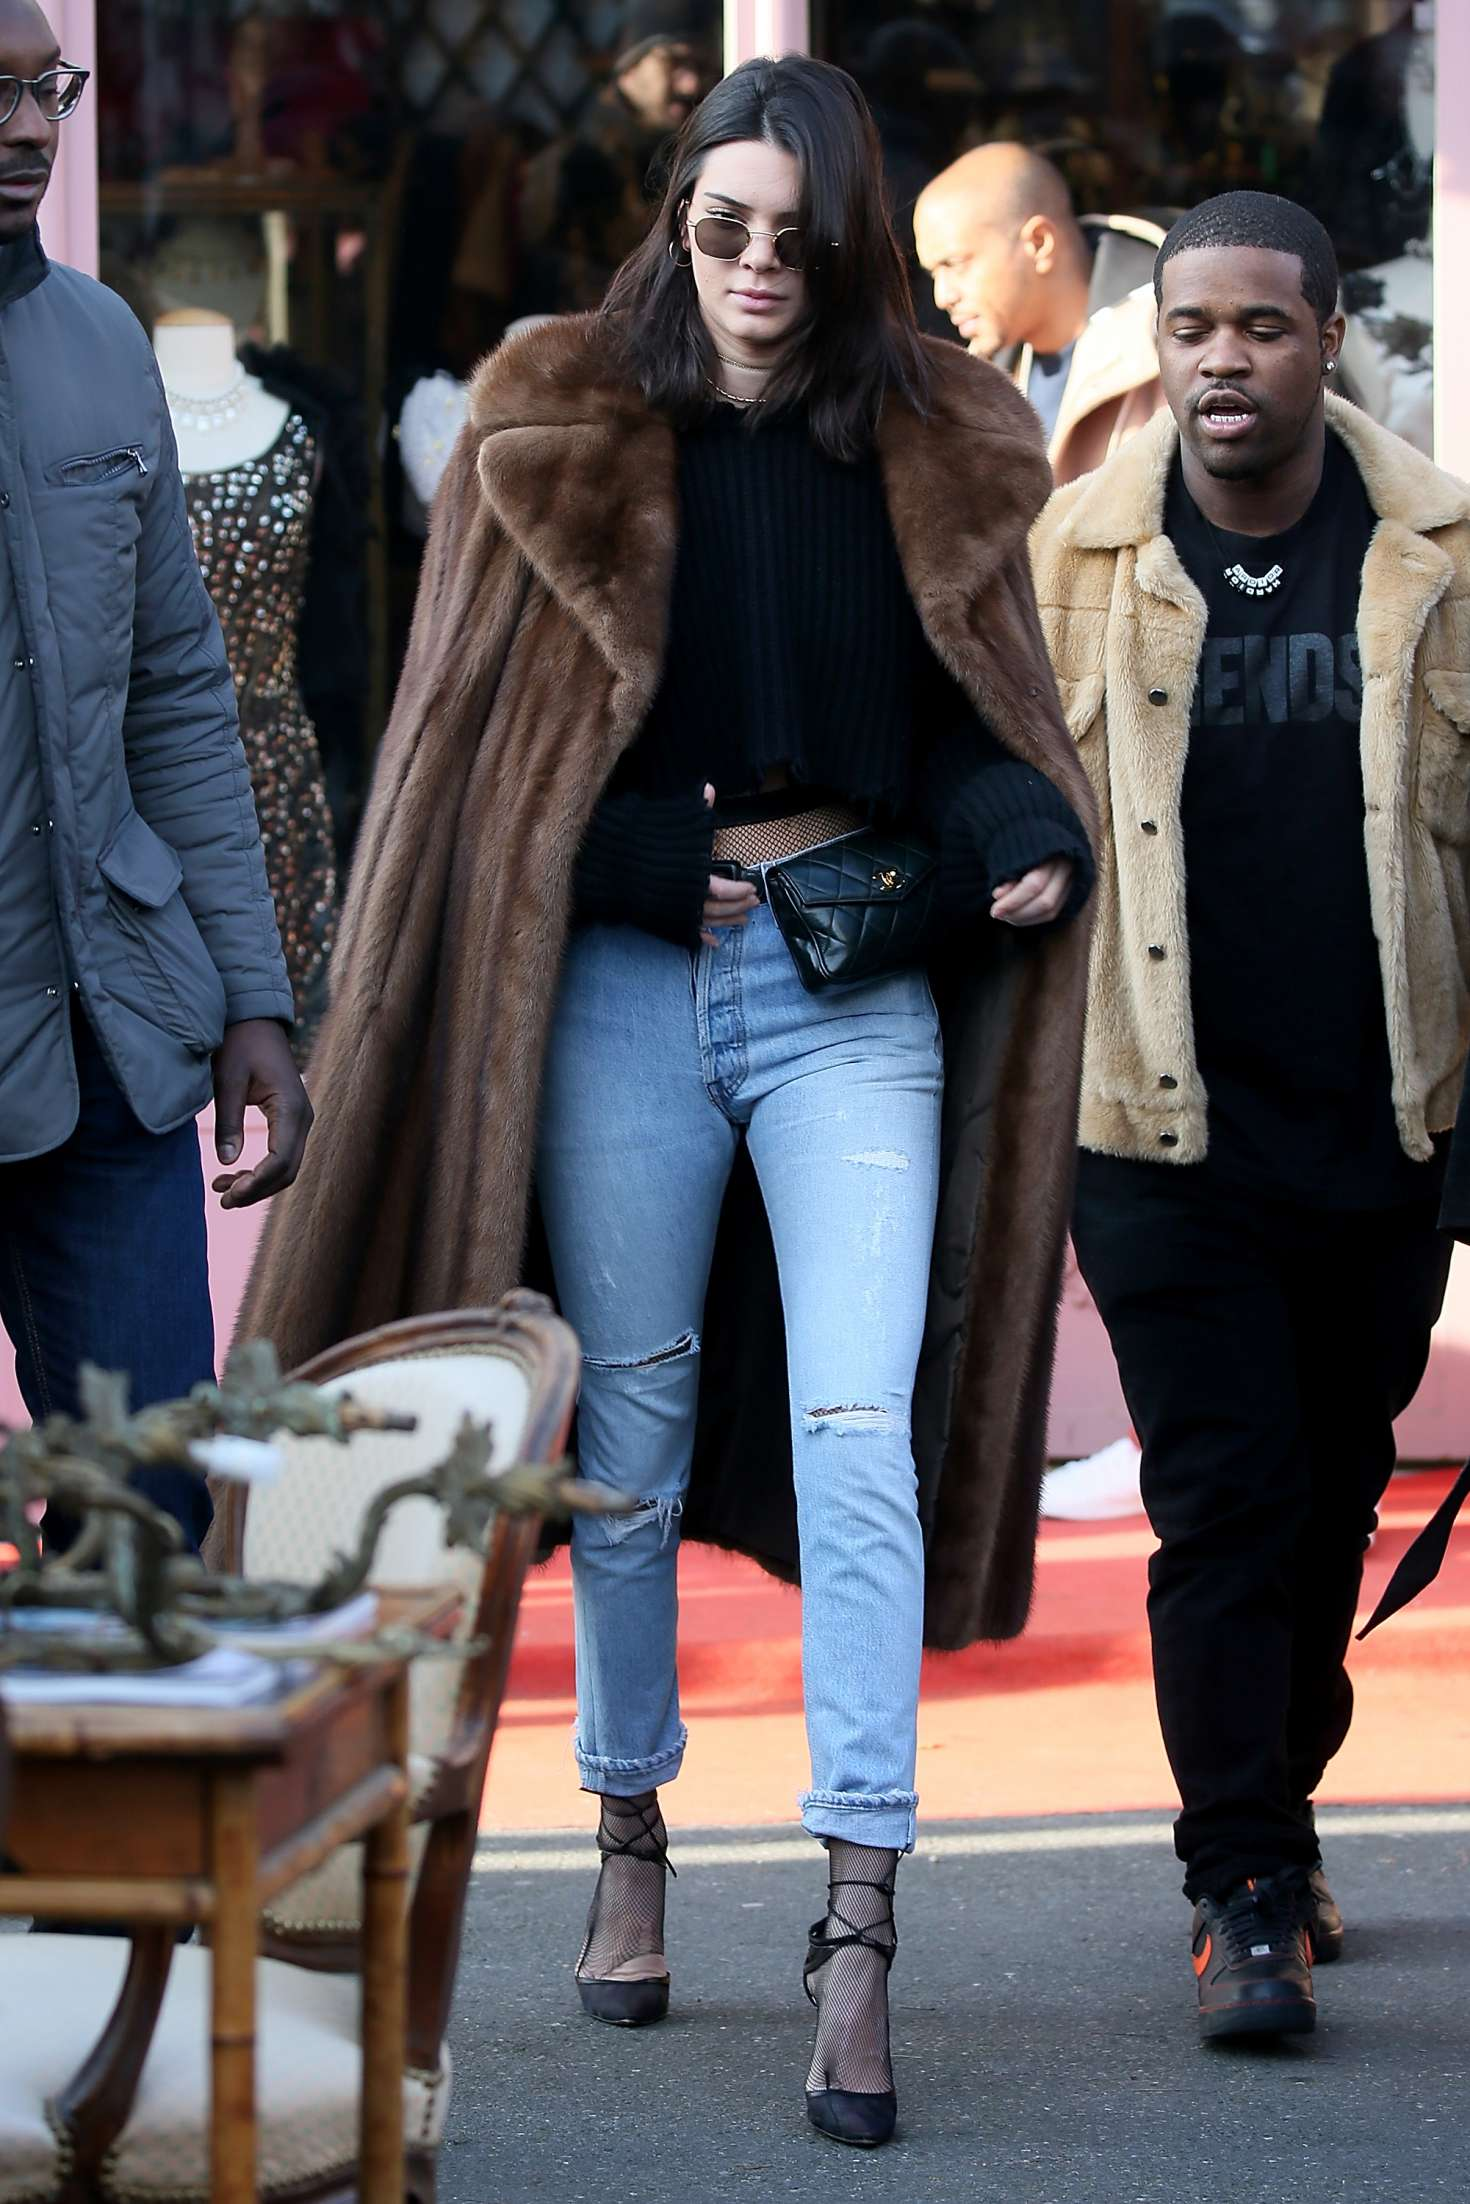 af782a41ed0e Back to post Kendall Jenner in Long Fur Coat out in Paris